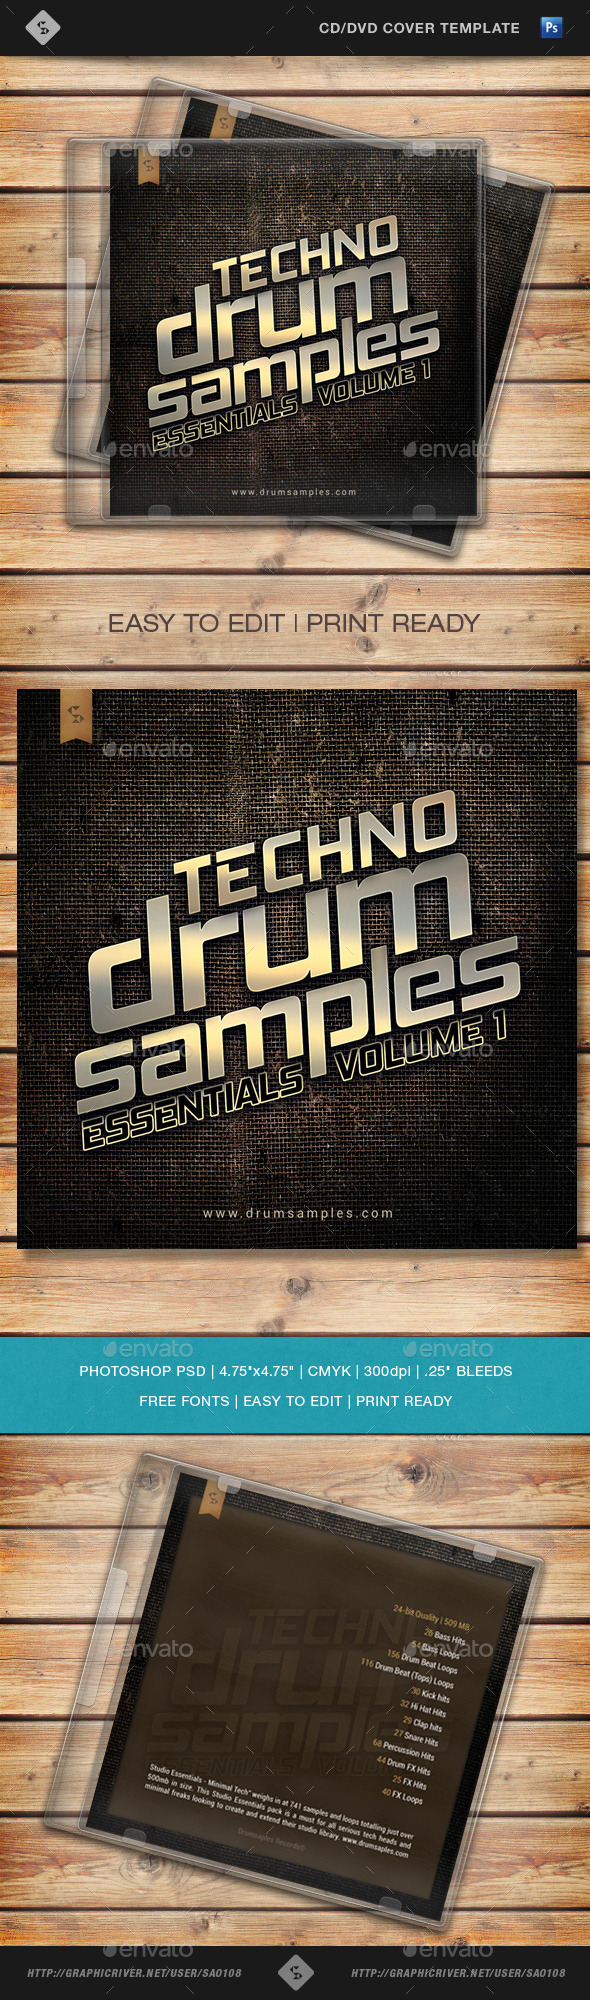 GraphicRiver Techno Drum Samples CD Cover Template 10735420